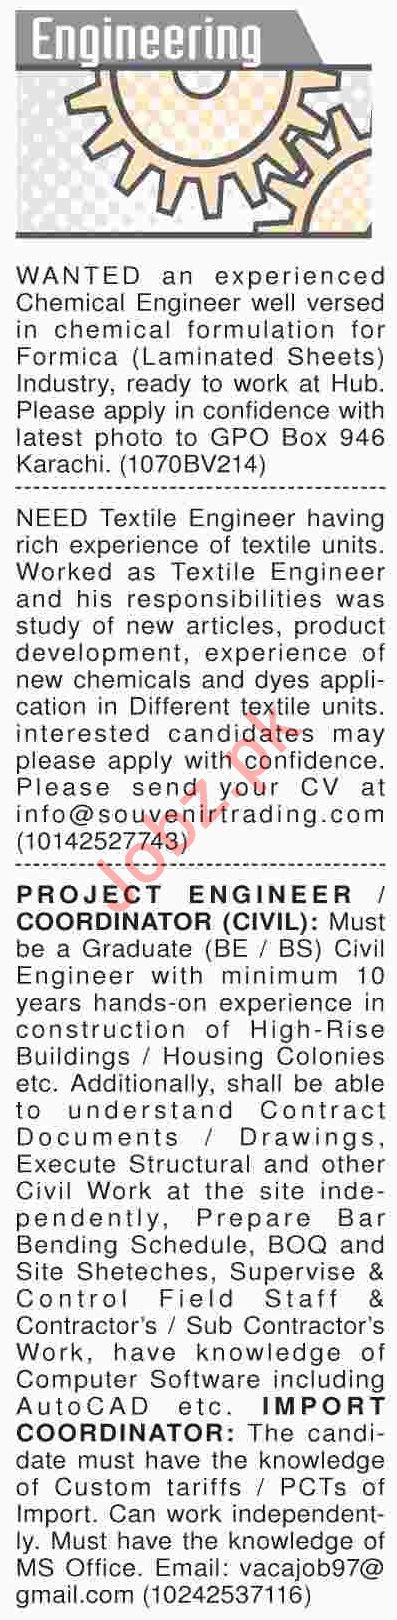 Dawn Sunday Classified Ads 31st March 2019 for Engineers